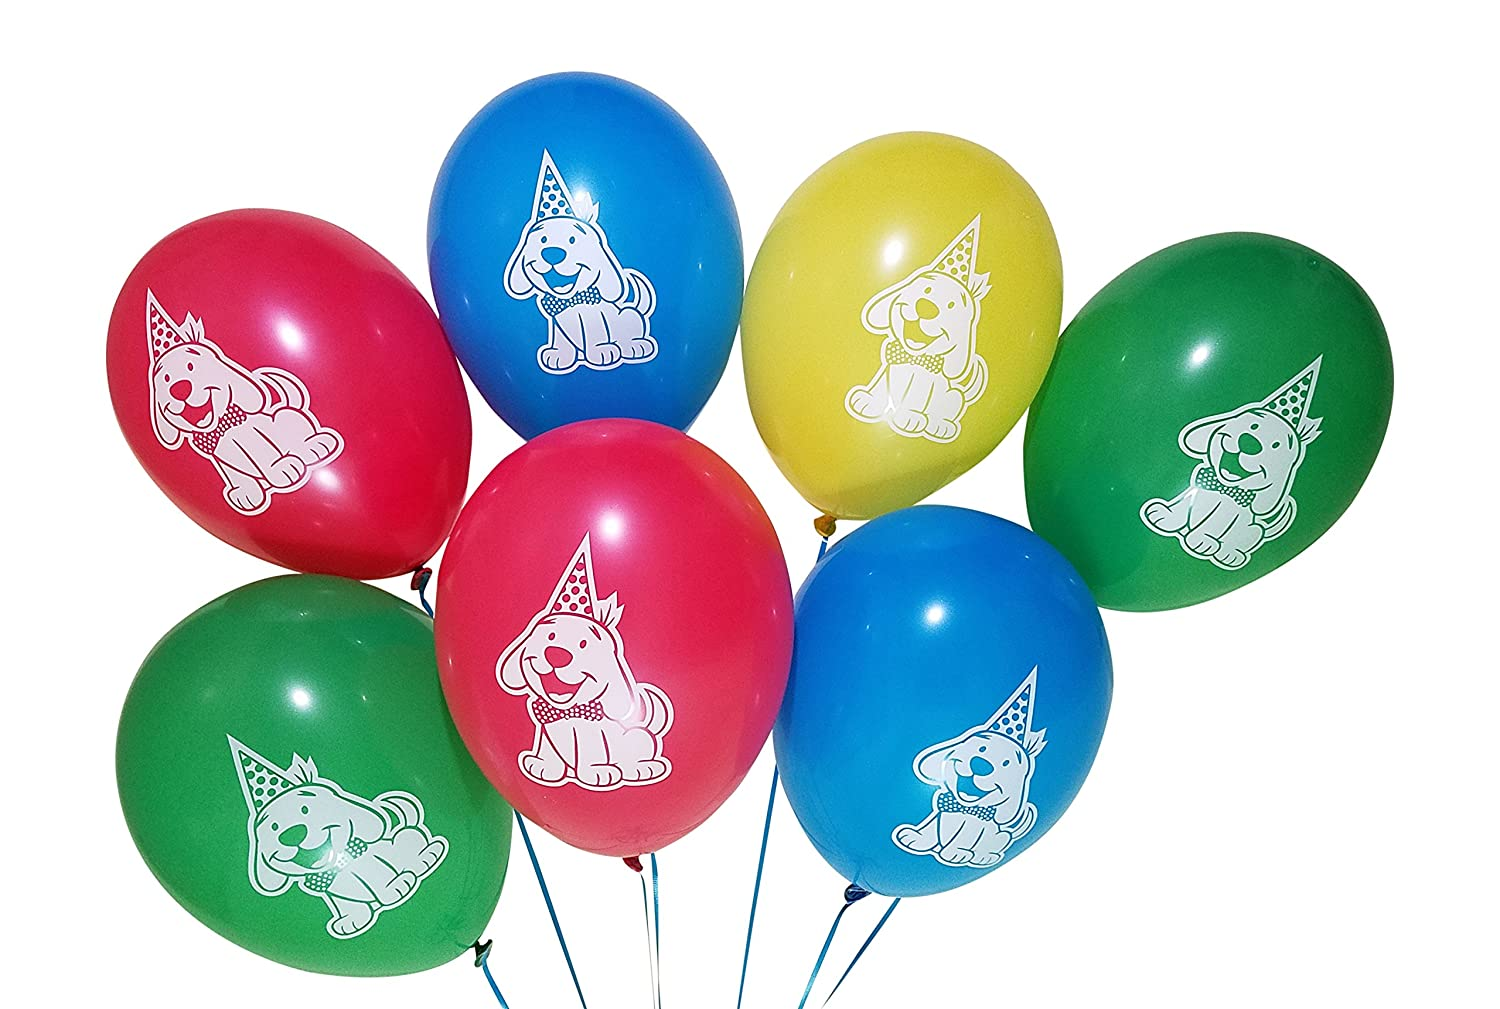 Puppy Dog Birthday Party Balloons 25 Pack Blue Red Yellow 3Cats Party Supplies . Green